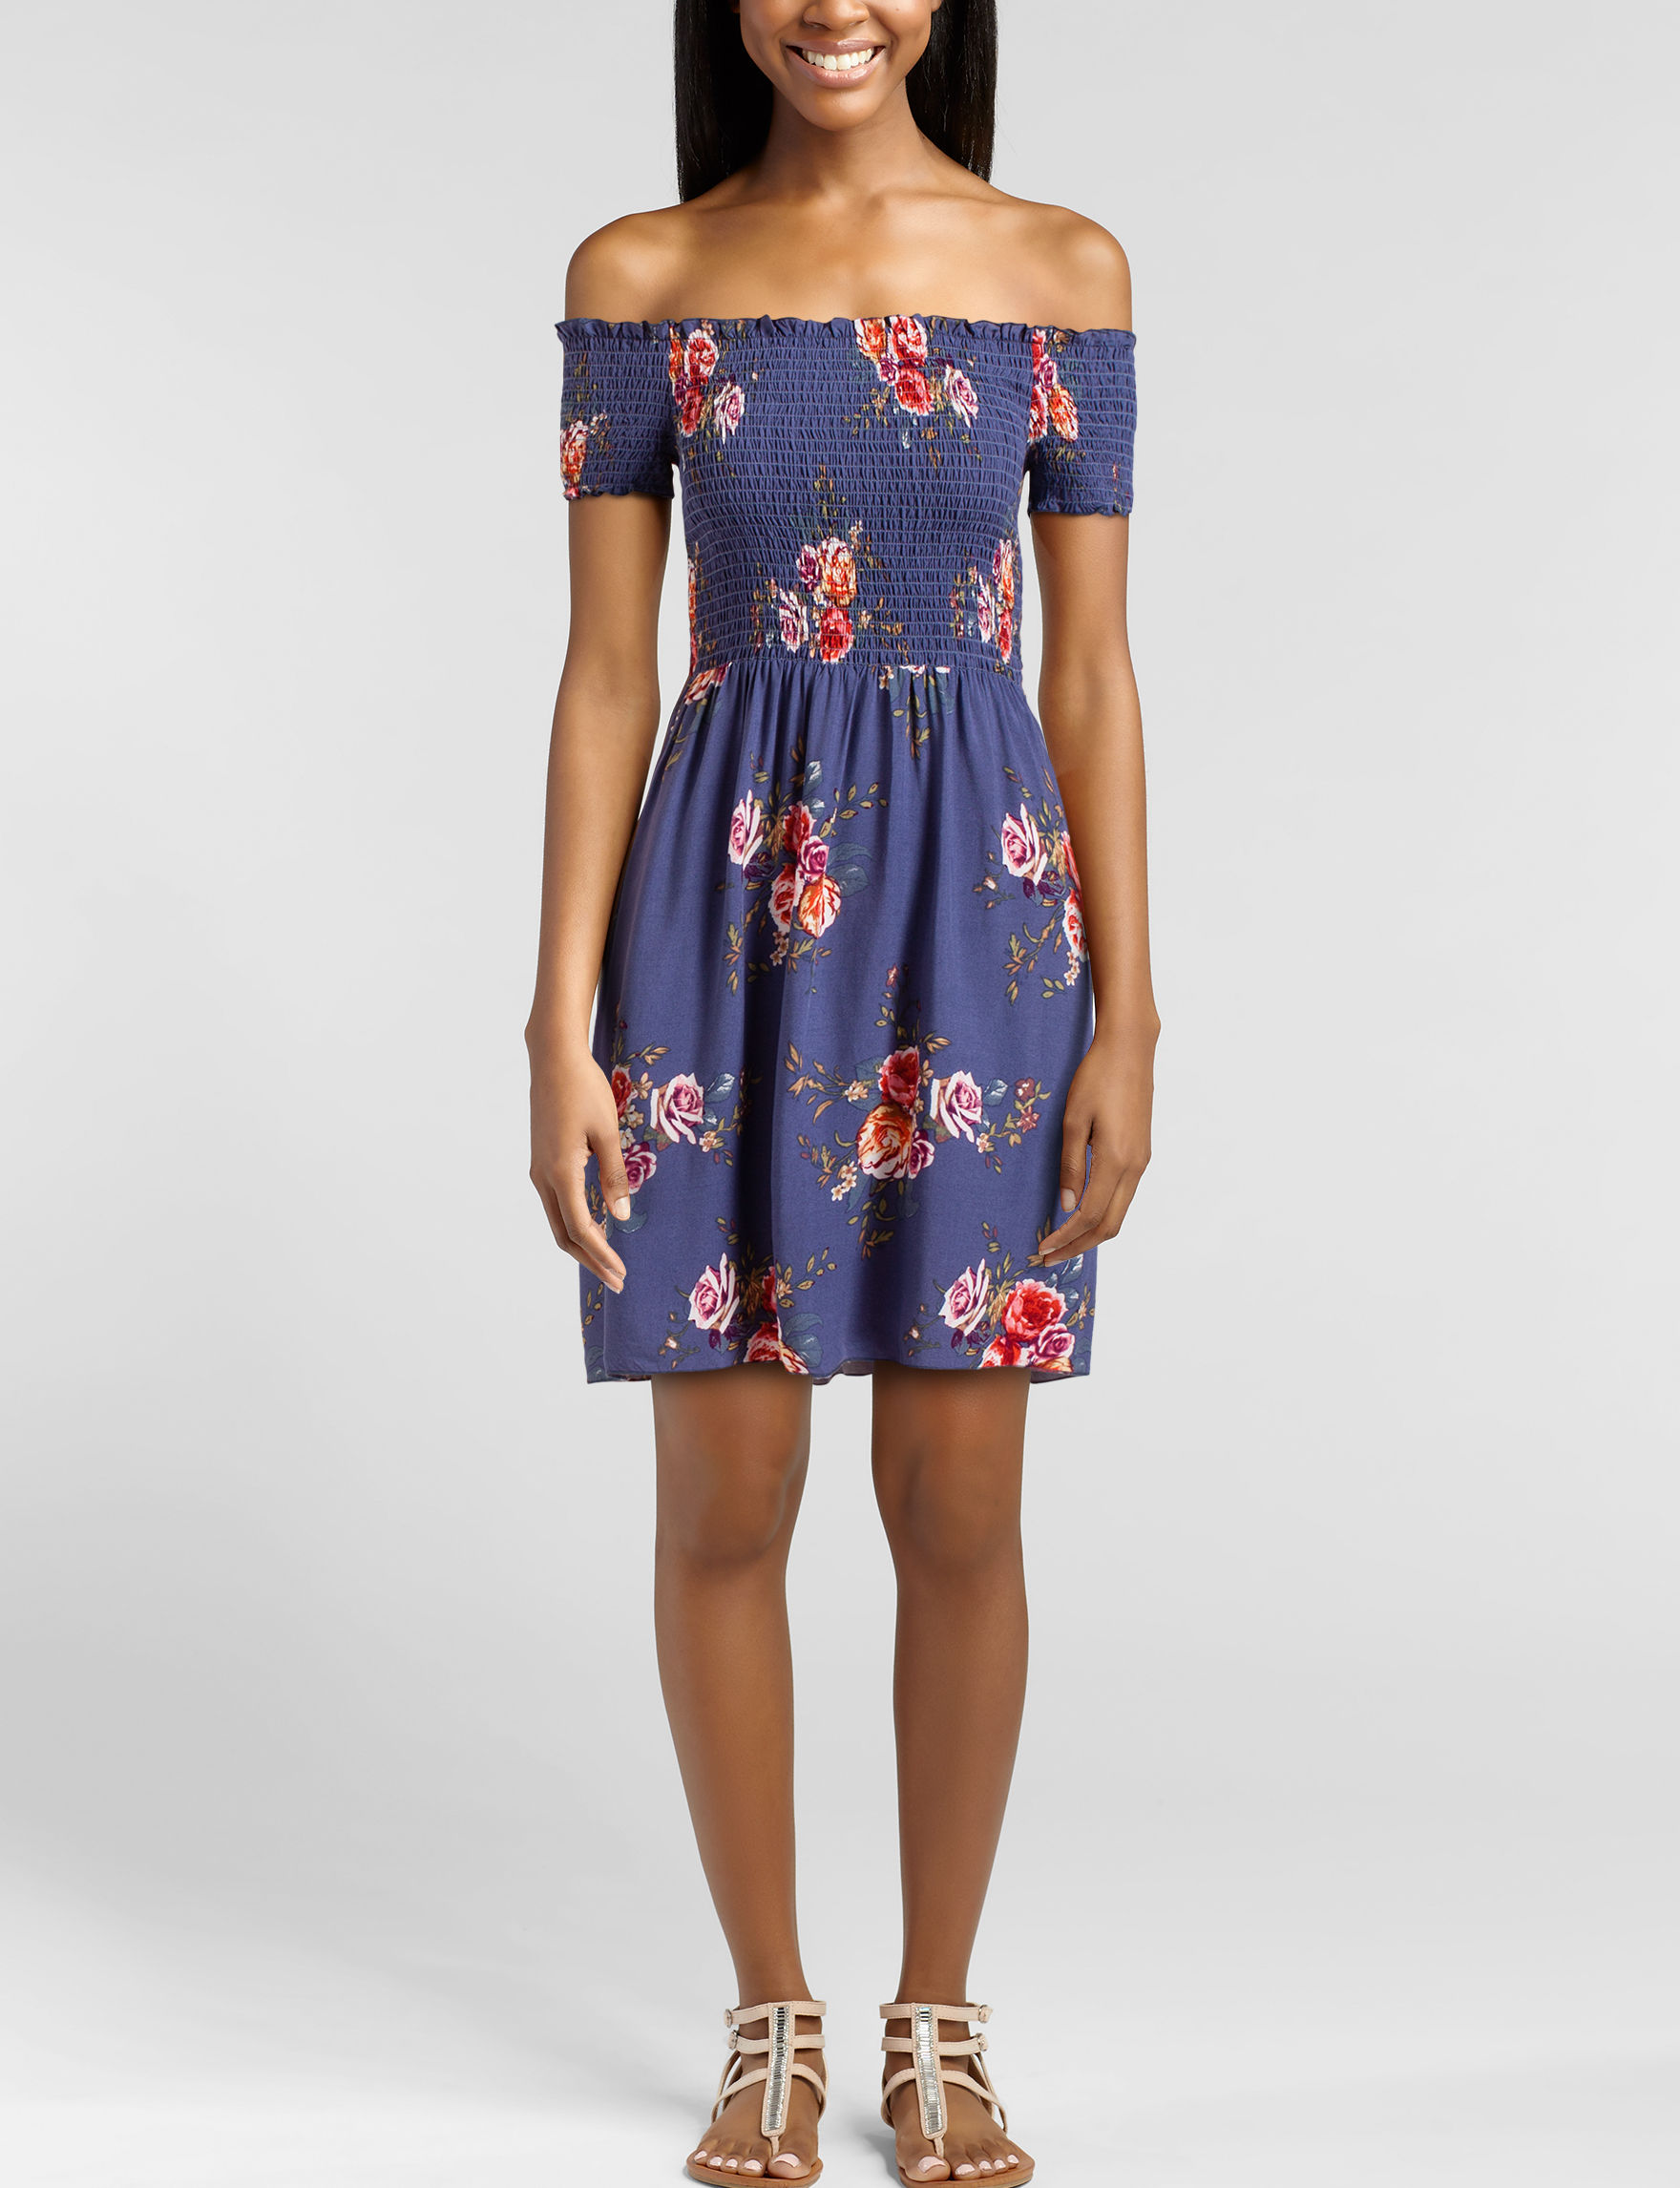 Wishful Park Blue Floral Everyday & Casual